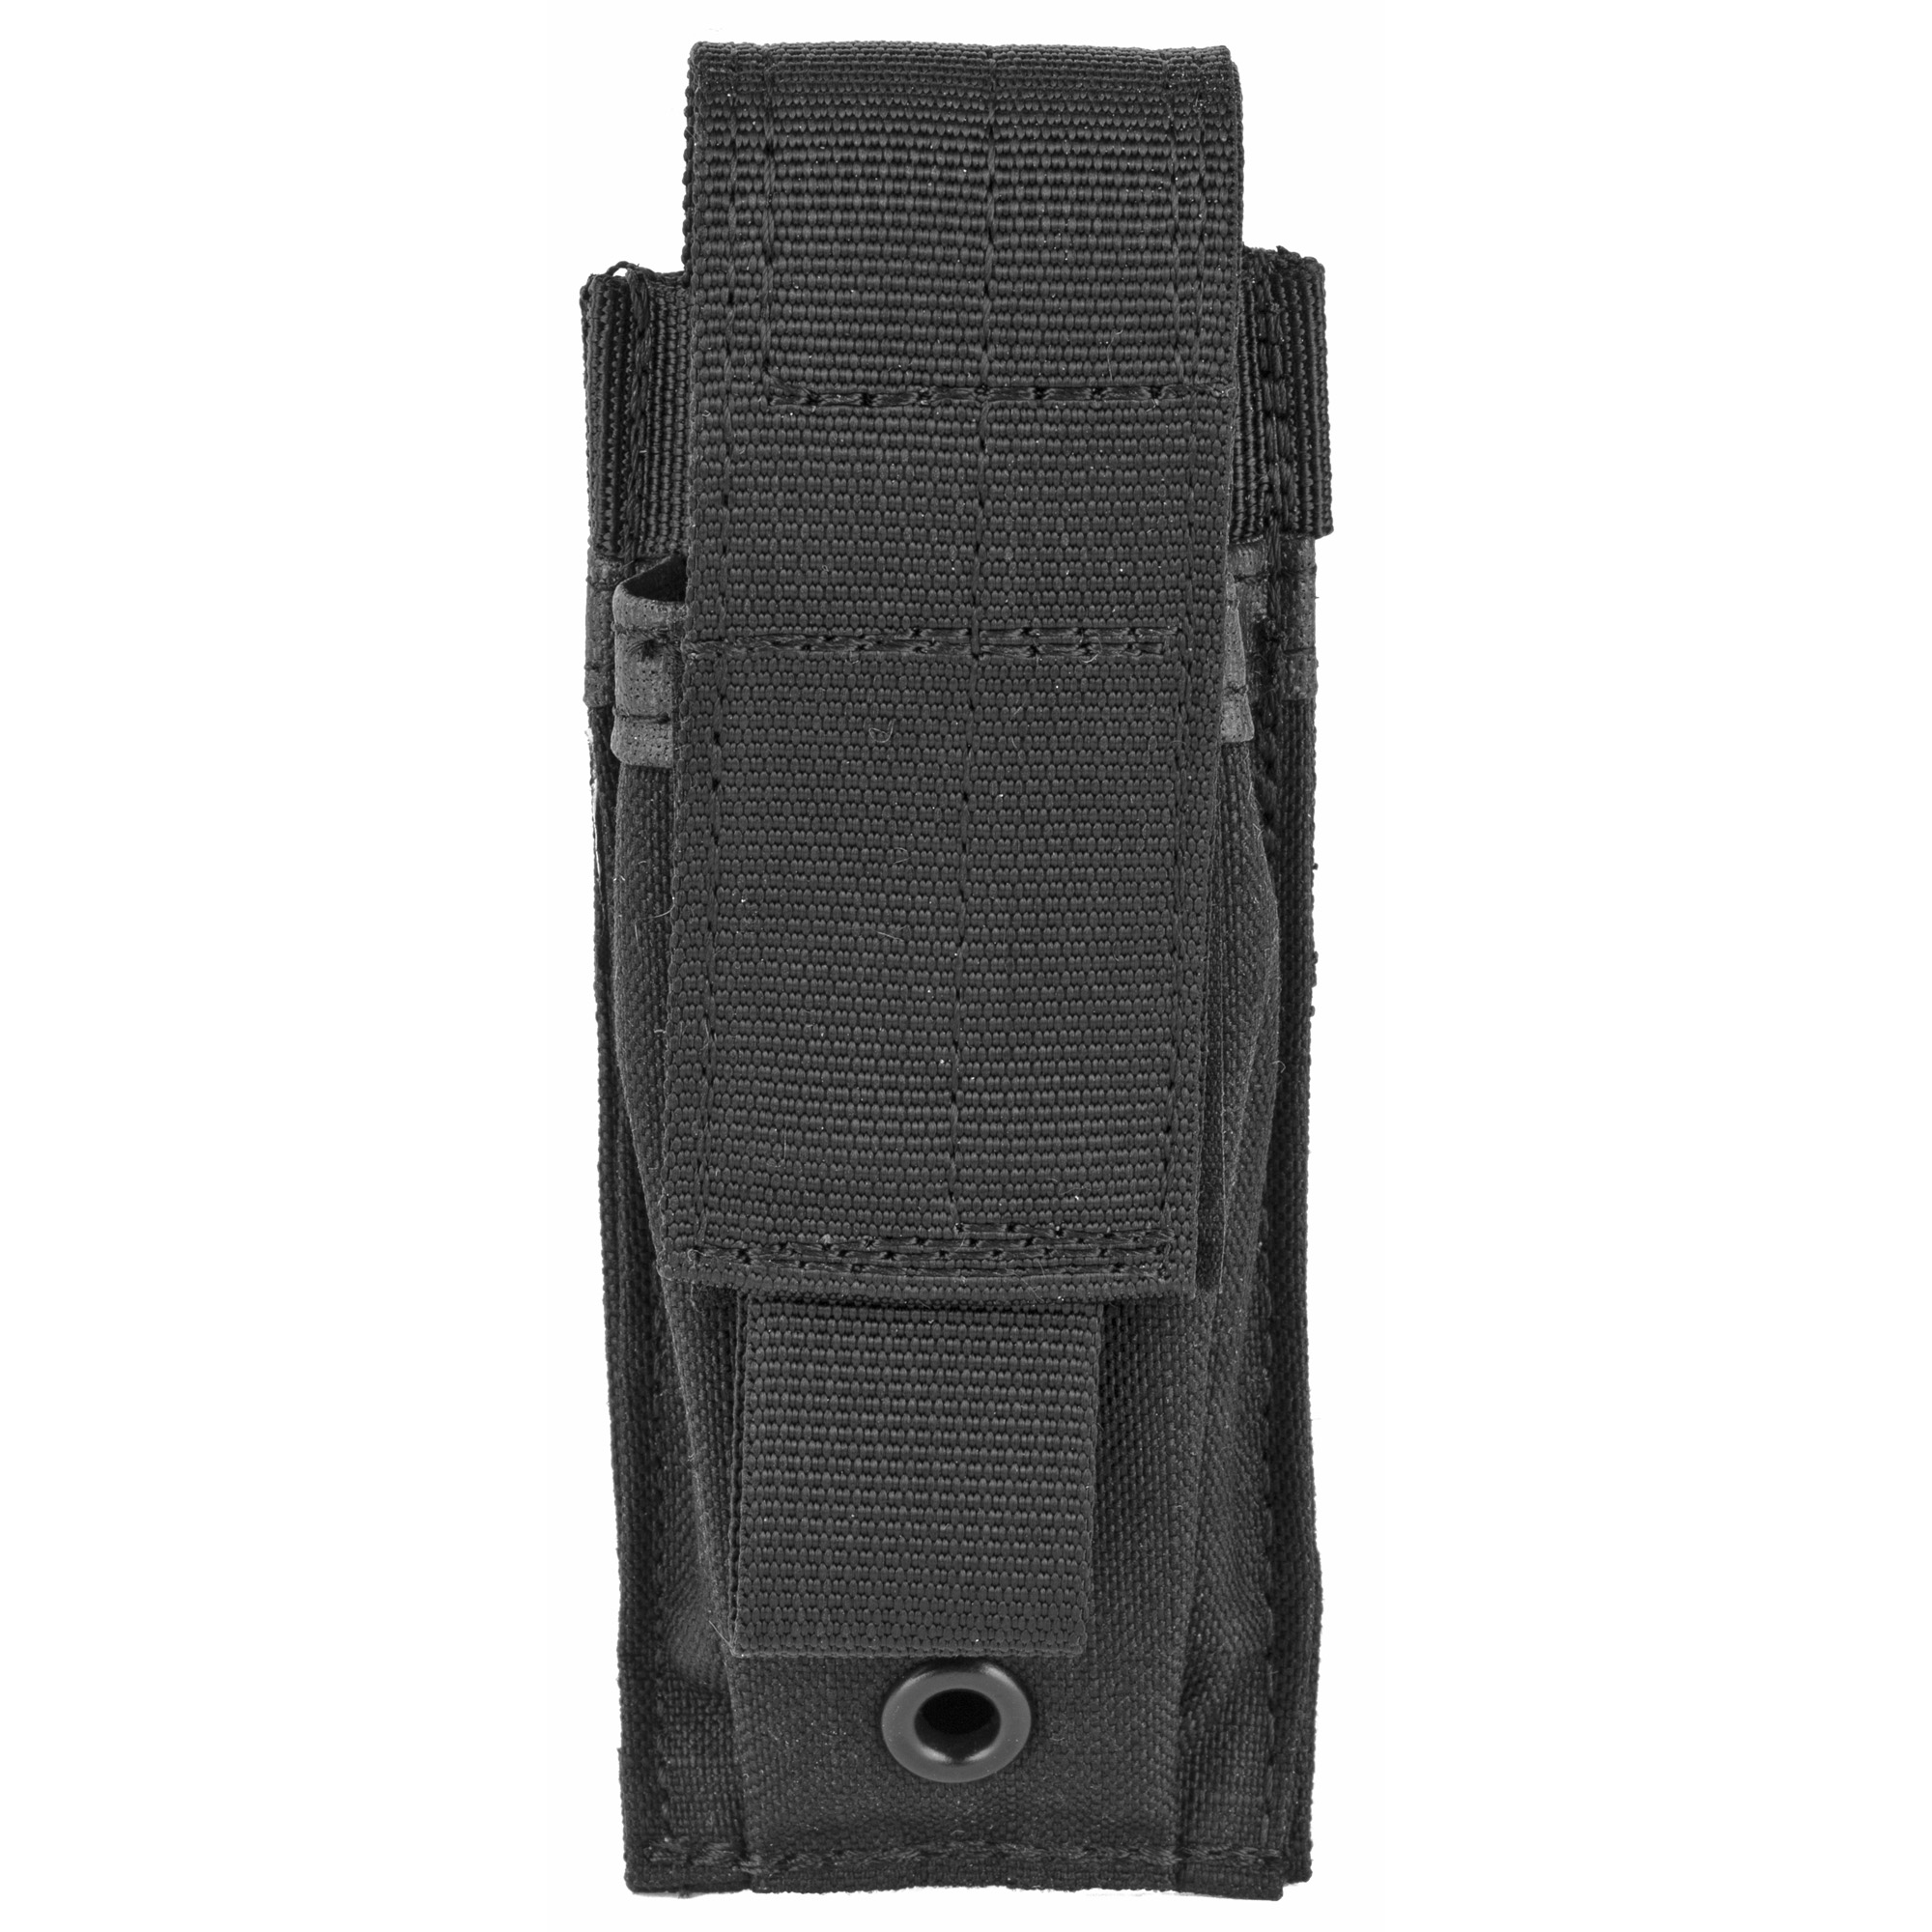 Mounts to any S.T.R.I.K.E.(R) or PALS/MOLLE platform by weaving the integral straps on the back of the pouch in and out of the platform webbing. Constructed of 500 denier nylon.